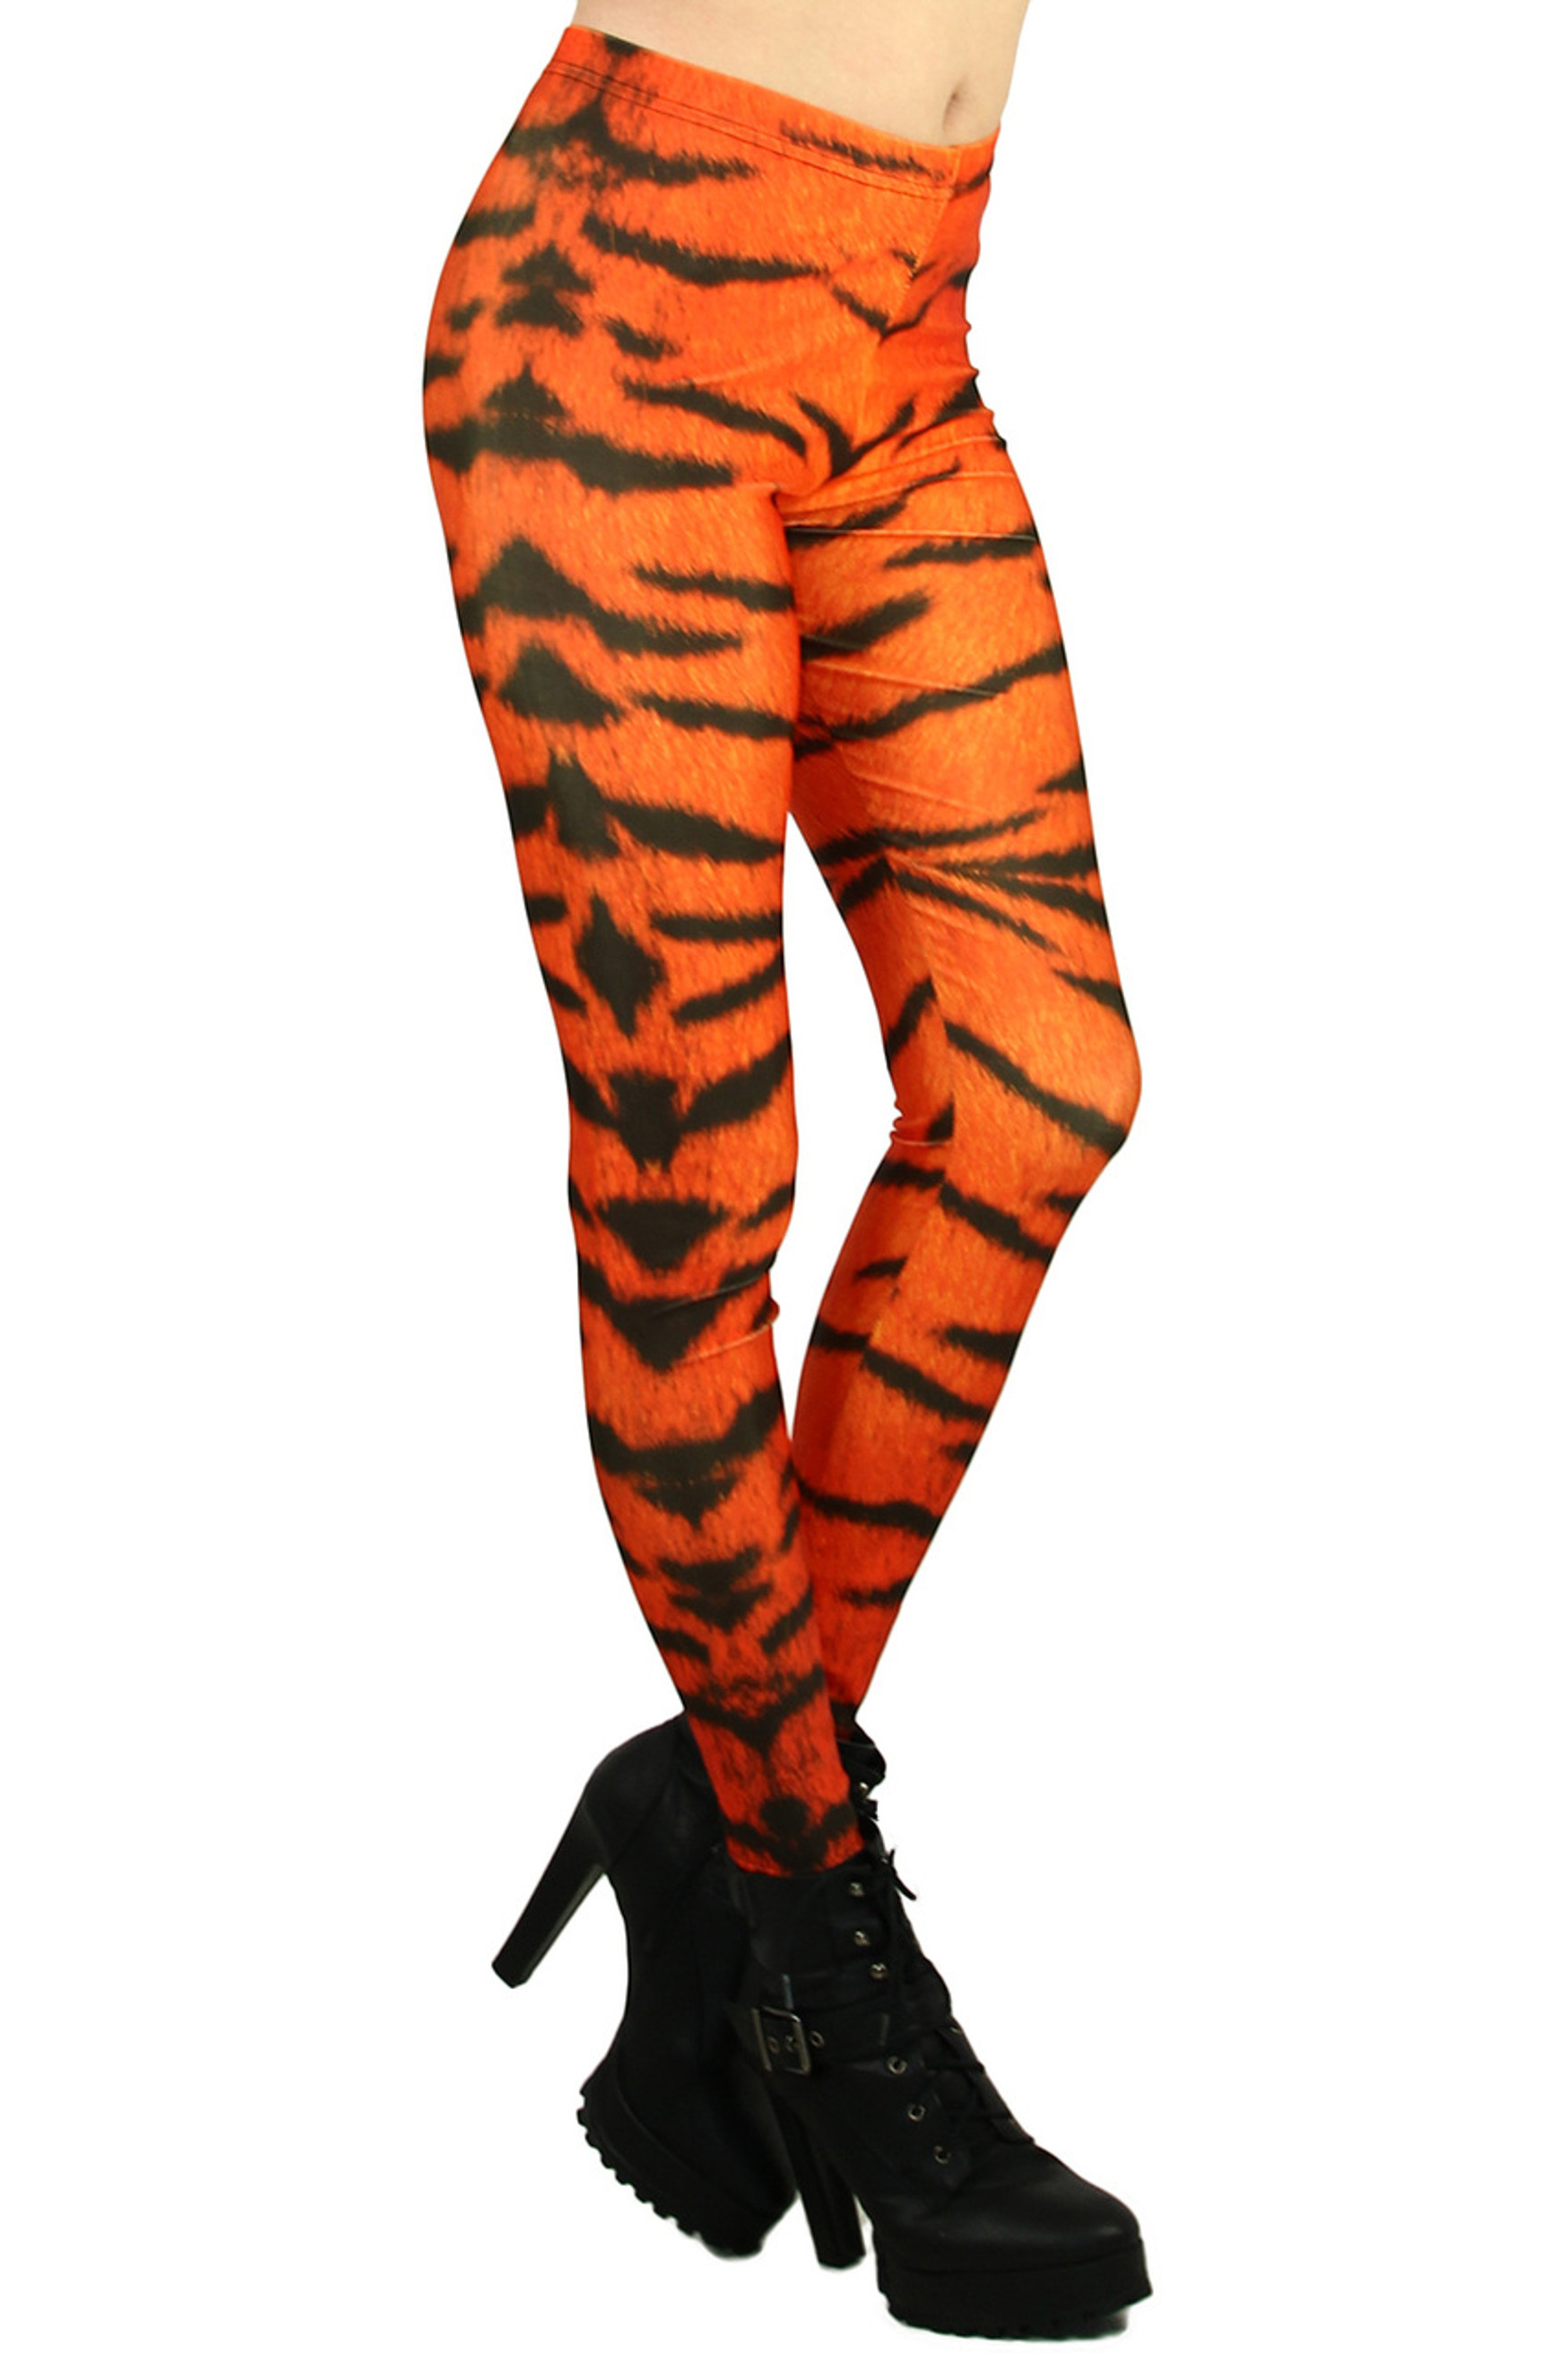 Caspian Tiger Leggings